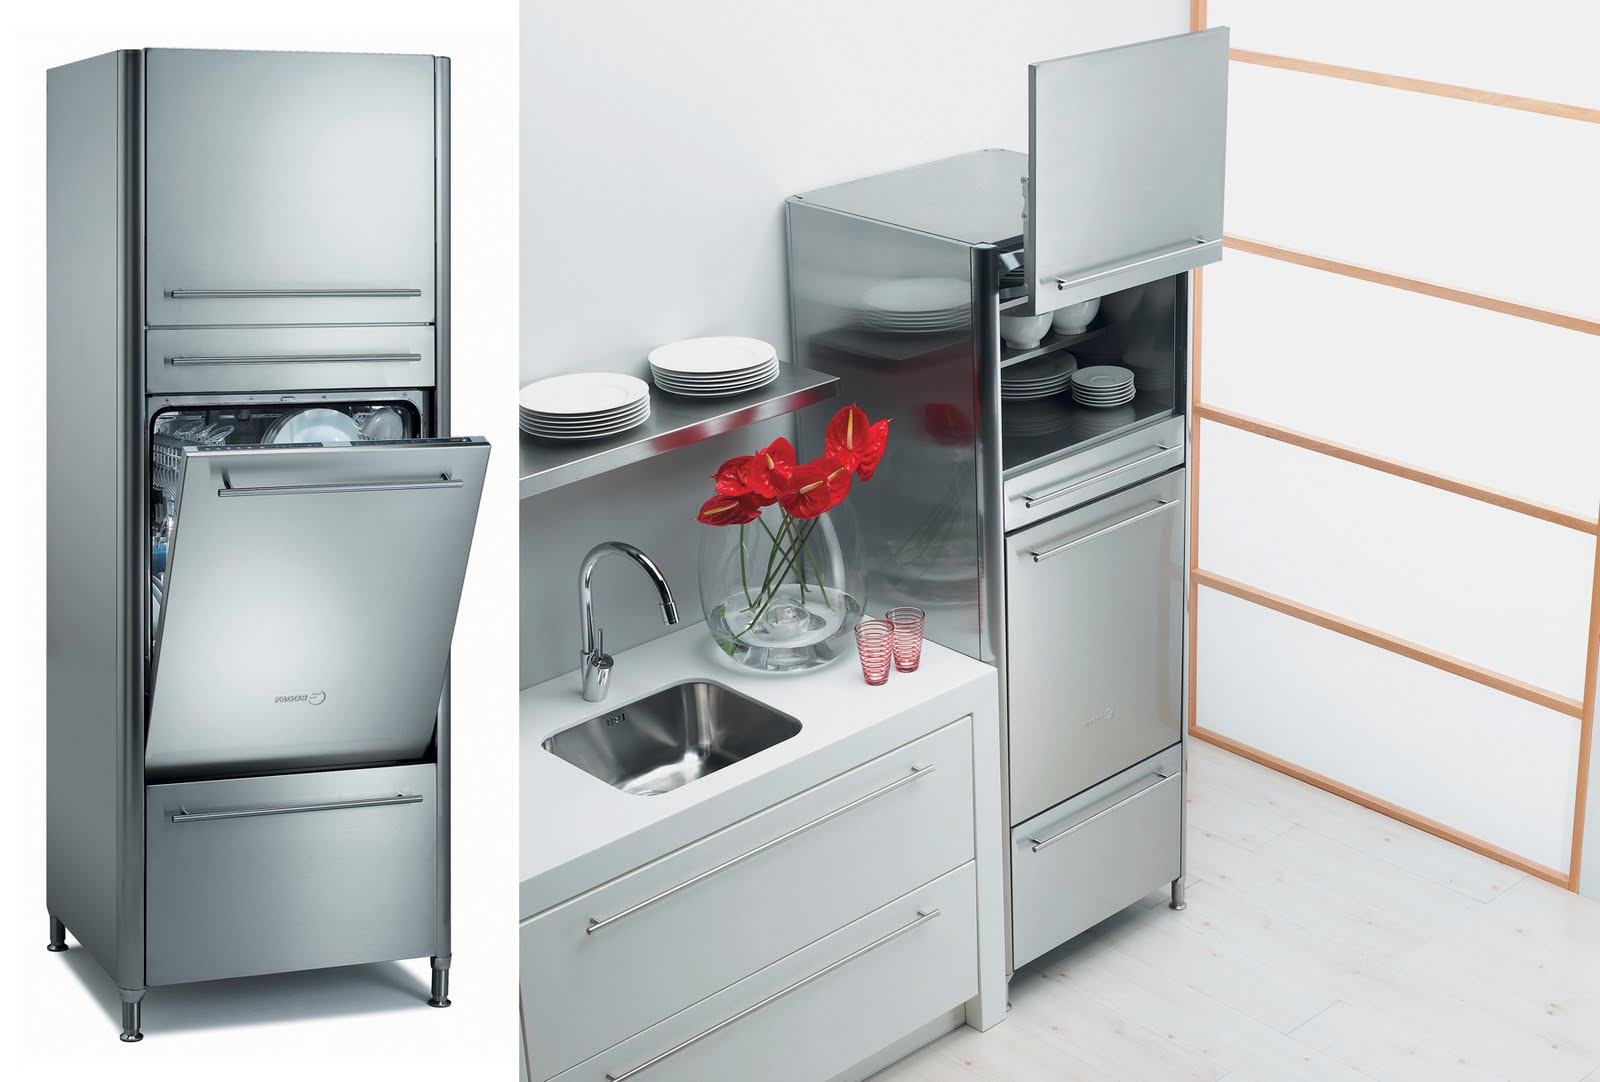 The kitchen and bath people design ideas for your small for Compact kitchens for small spaces